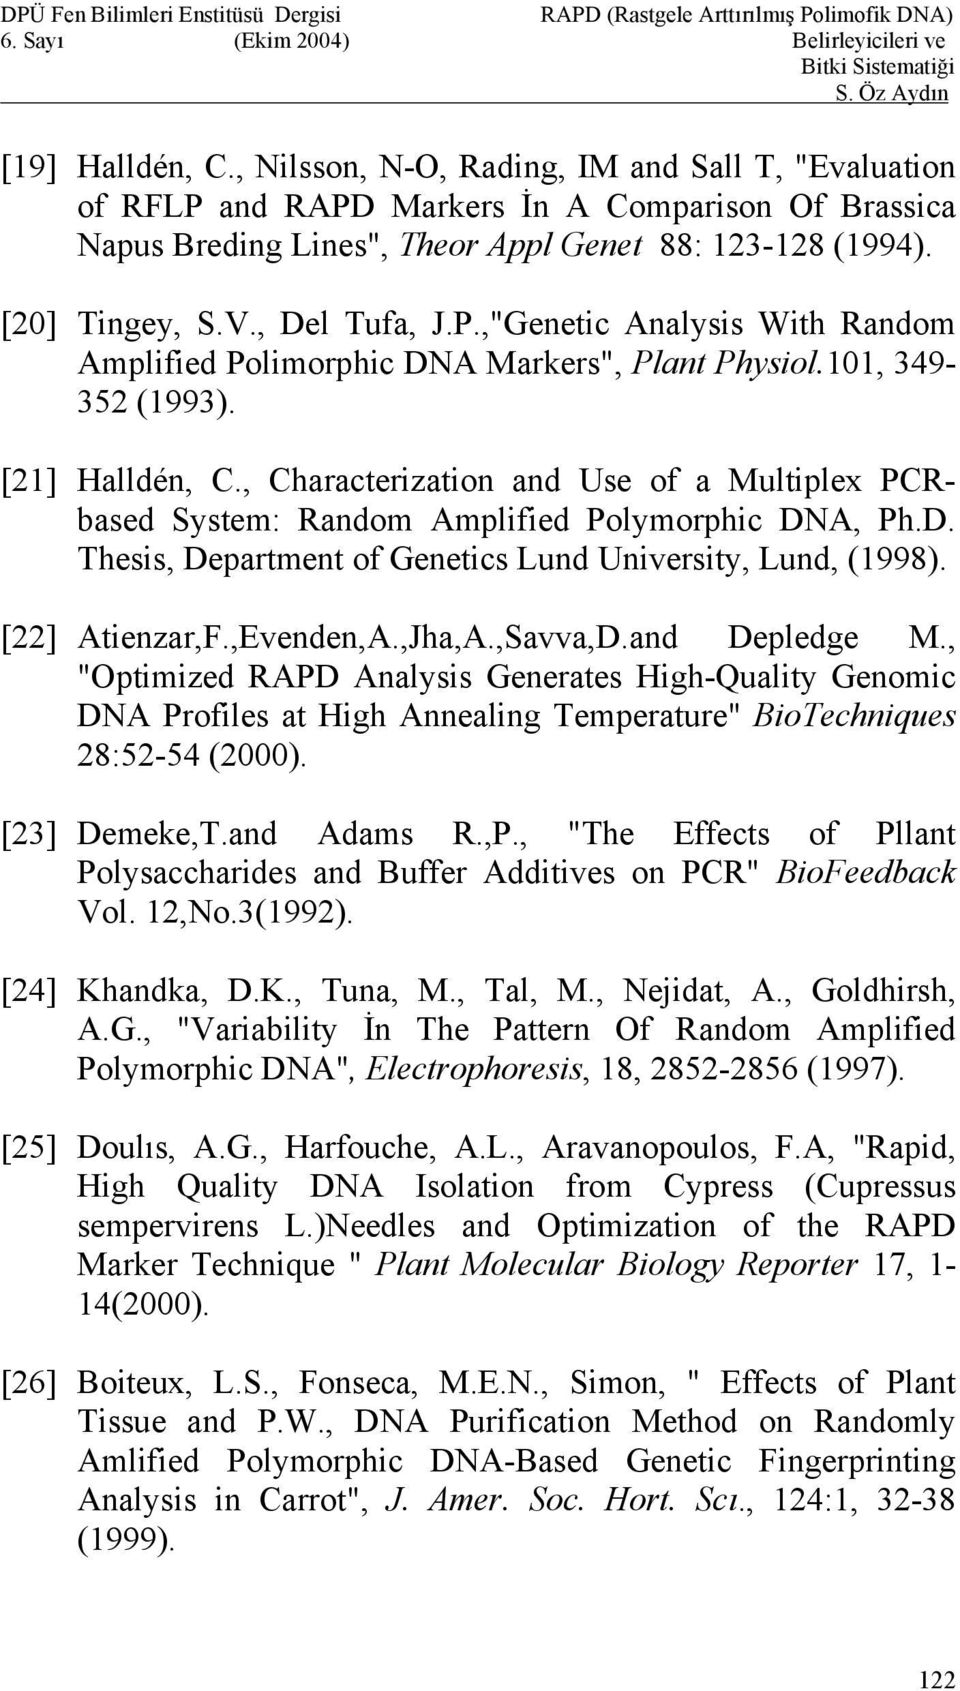 , Characterization and Use of a Multiplex PCRbased System: Random Amplified Polymorphic DNA, Ph.D. Thesis, Department of Genetics Lund University, Lund, (1998). [22] Atienzar,F.,Evenden,A.,Jha,A.